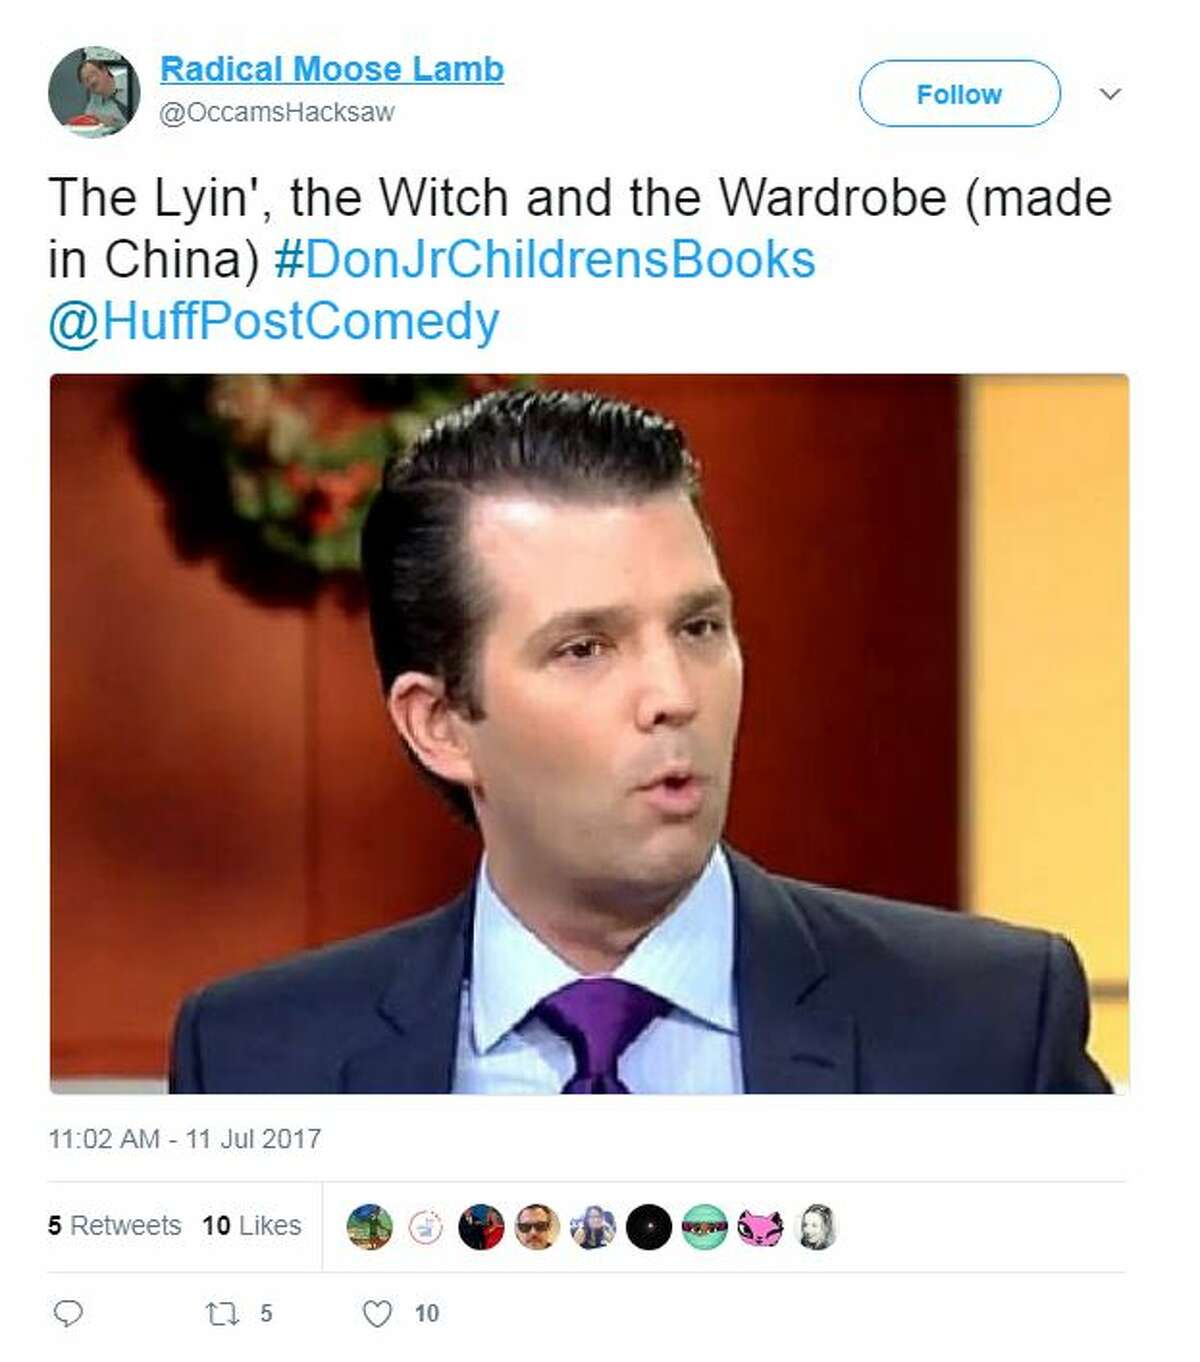 The Lyin', the Witch and the Wardrobe (made in China) #DonJrChildrensBooks @HuffPostComedy